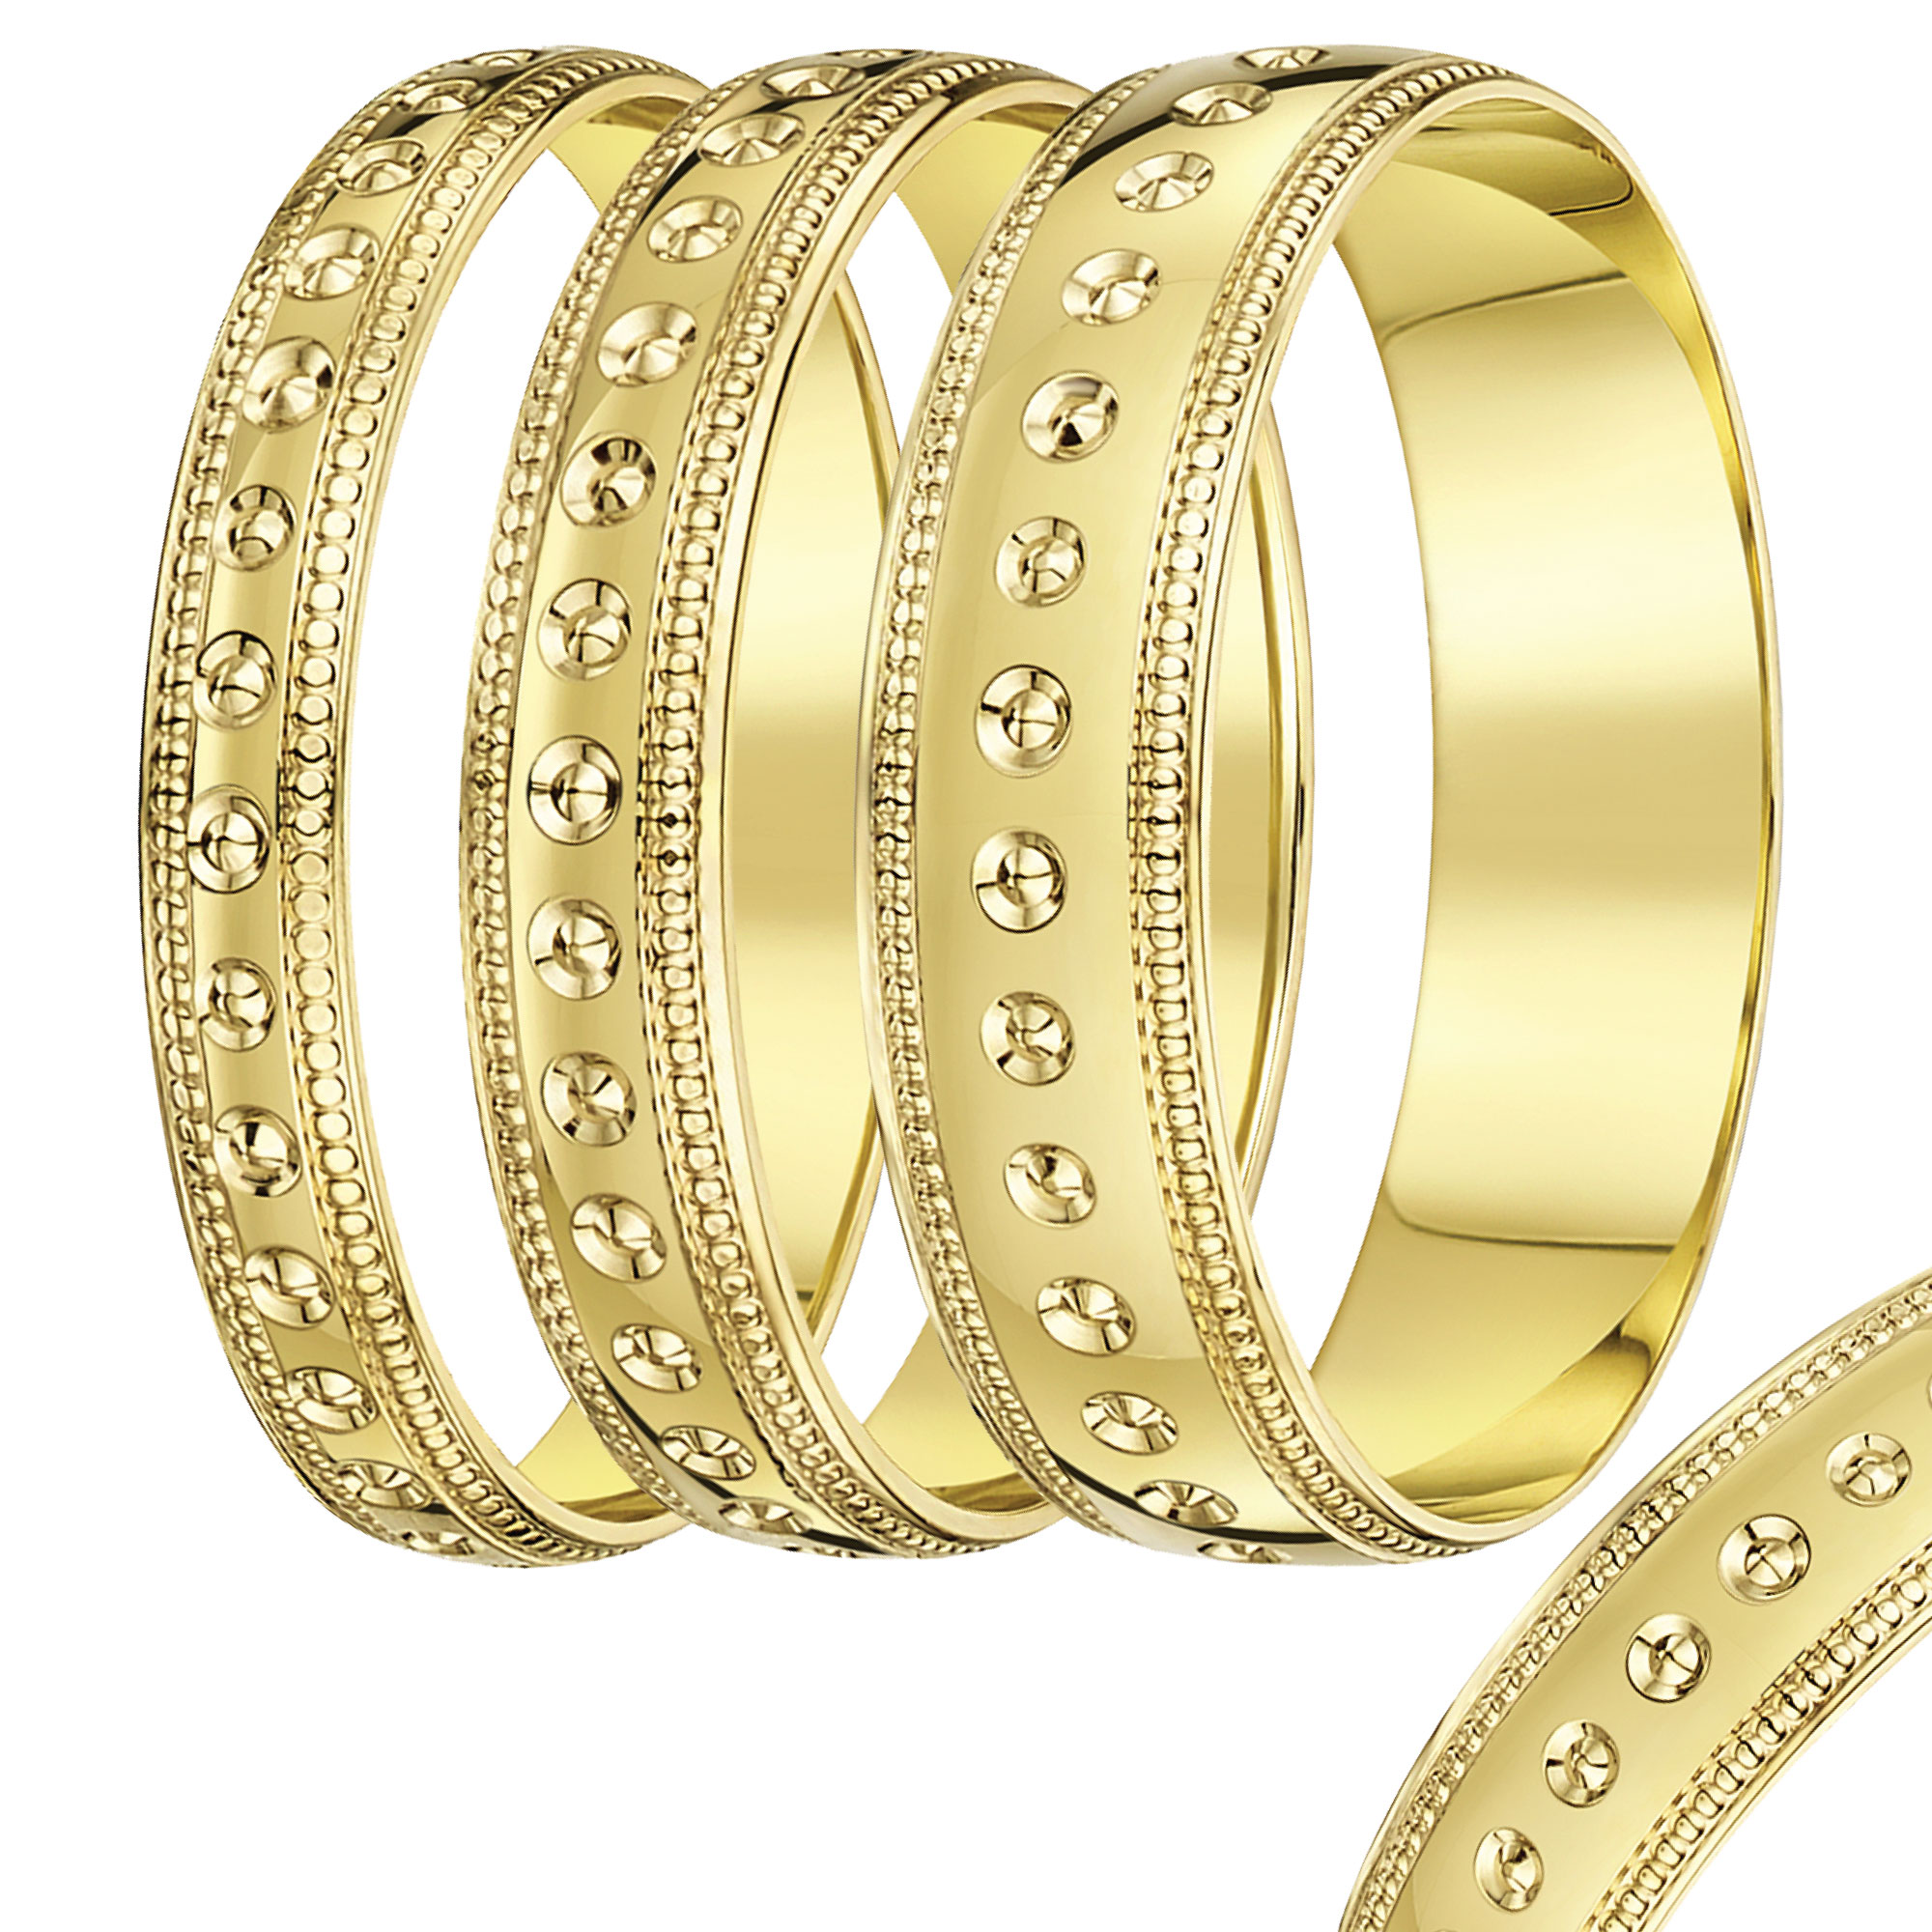 4mm-8mm Yellow Gold Dot & Millgrain Edge wedding rind band